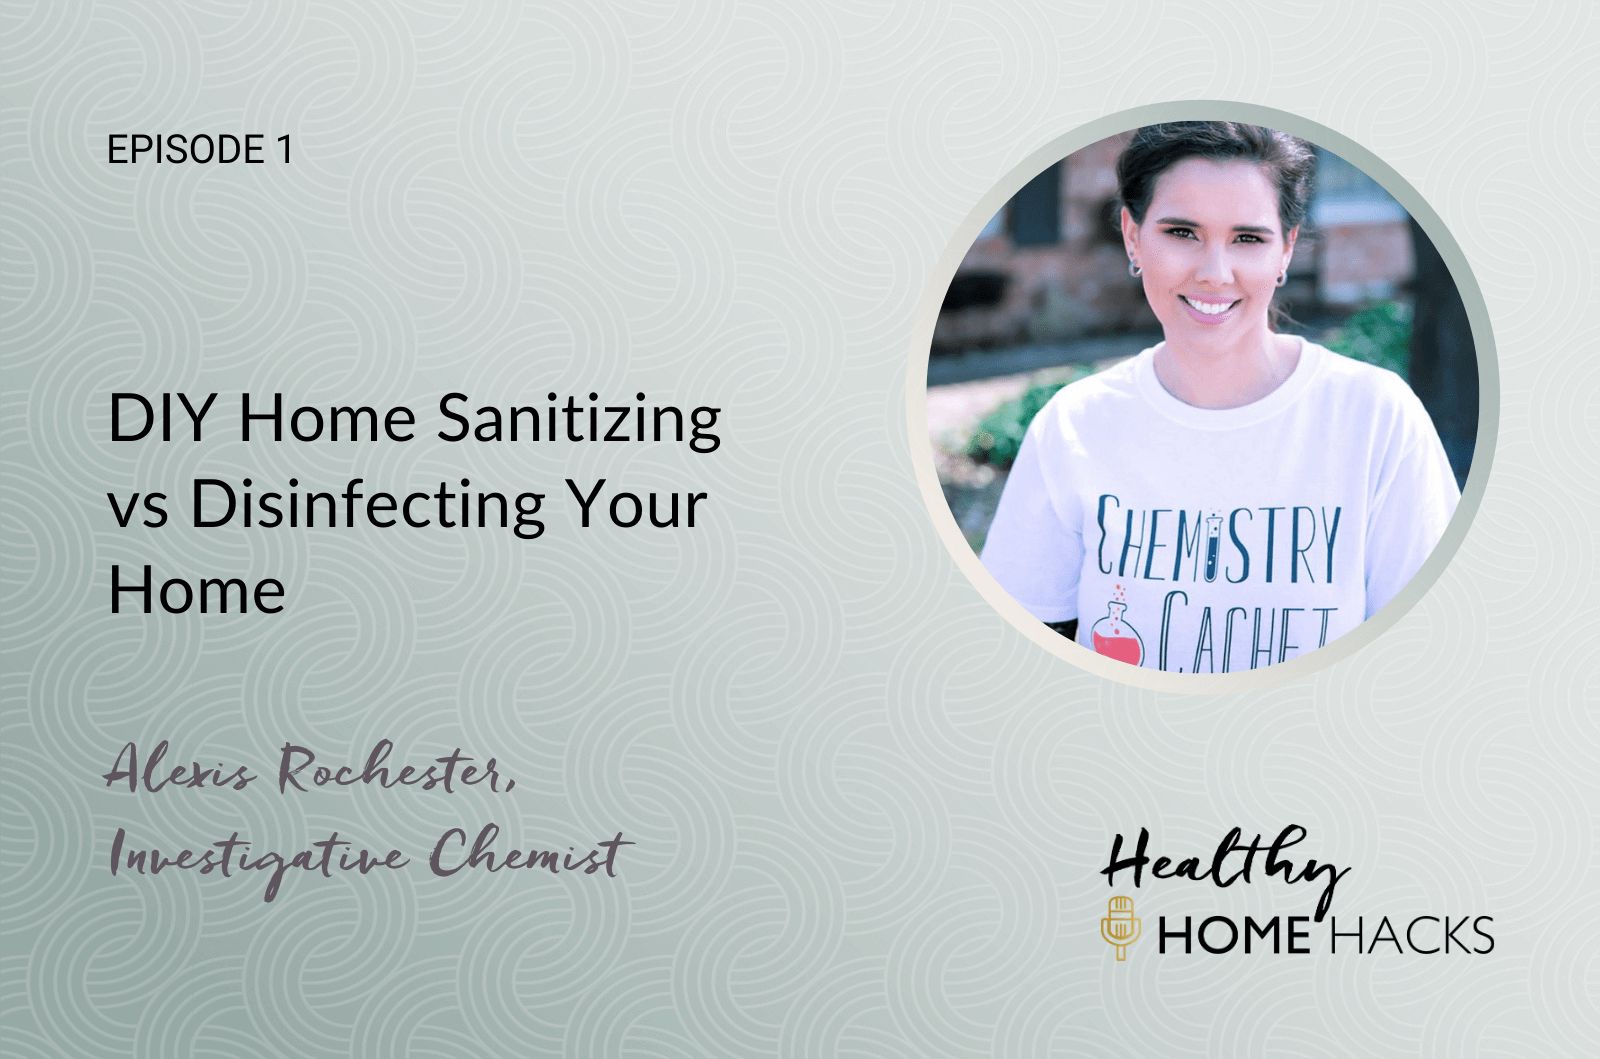 DIY Home Sanitizing vs Disinfecting Your Home